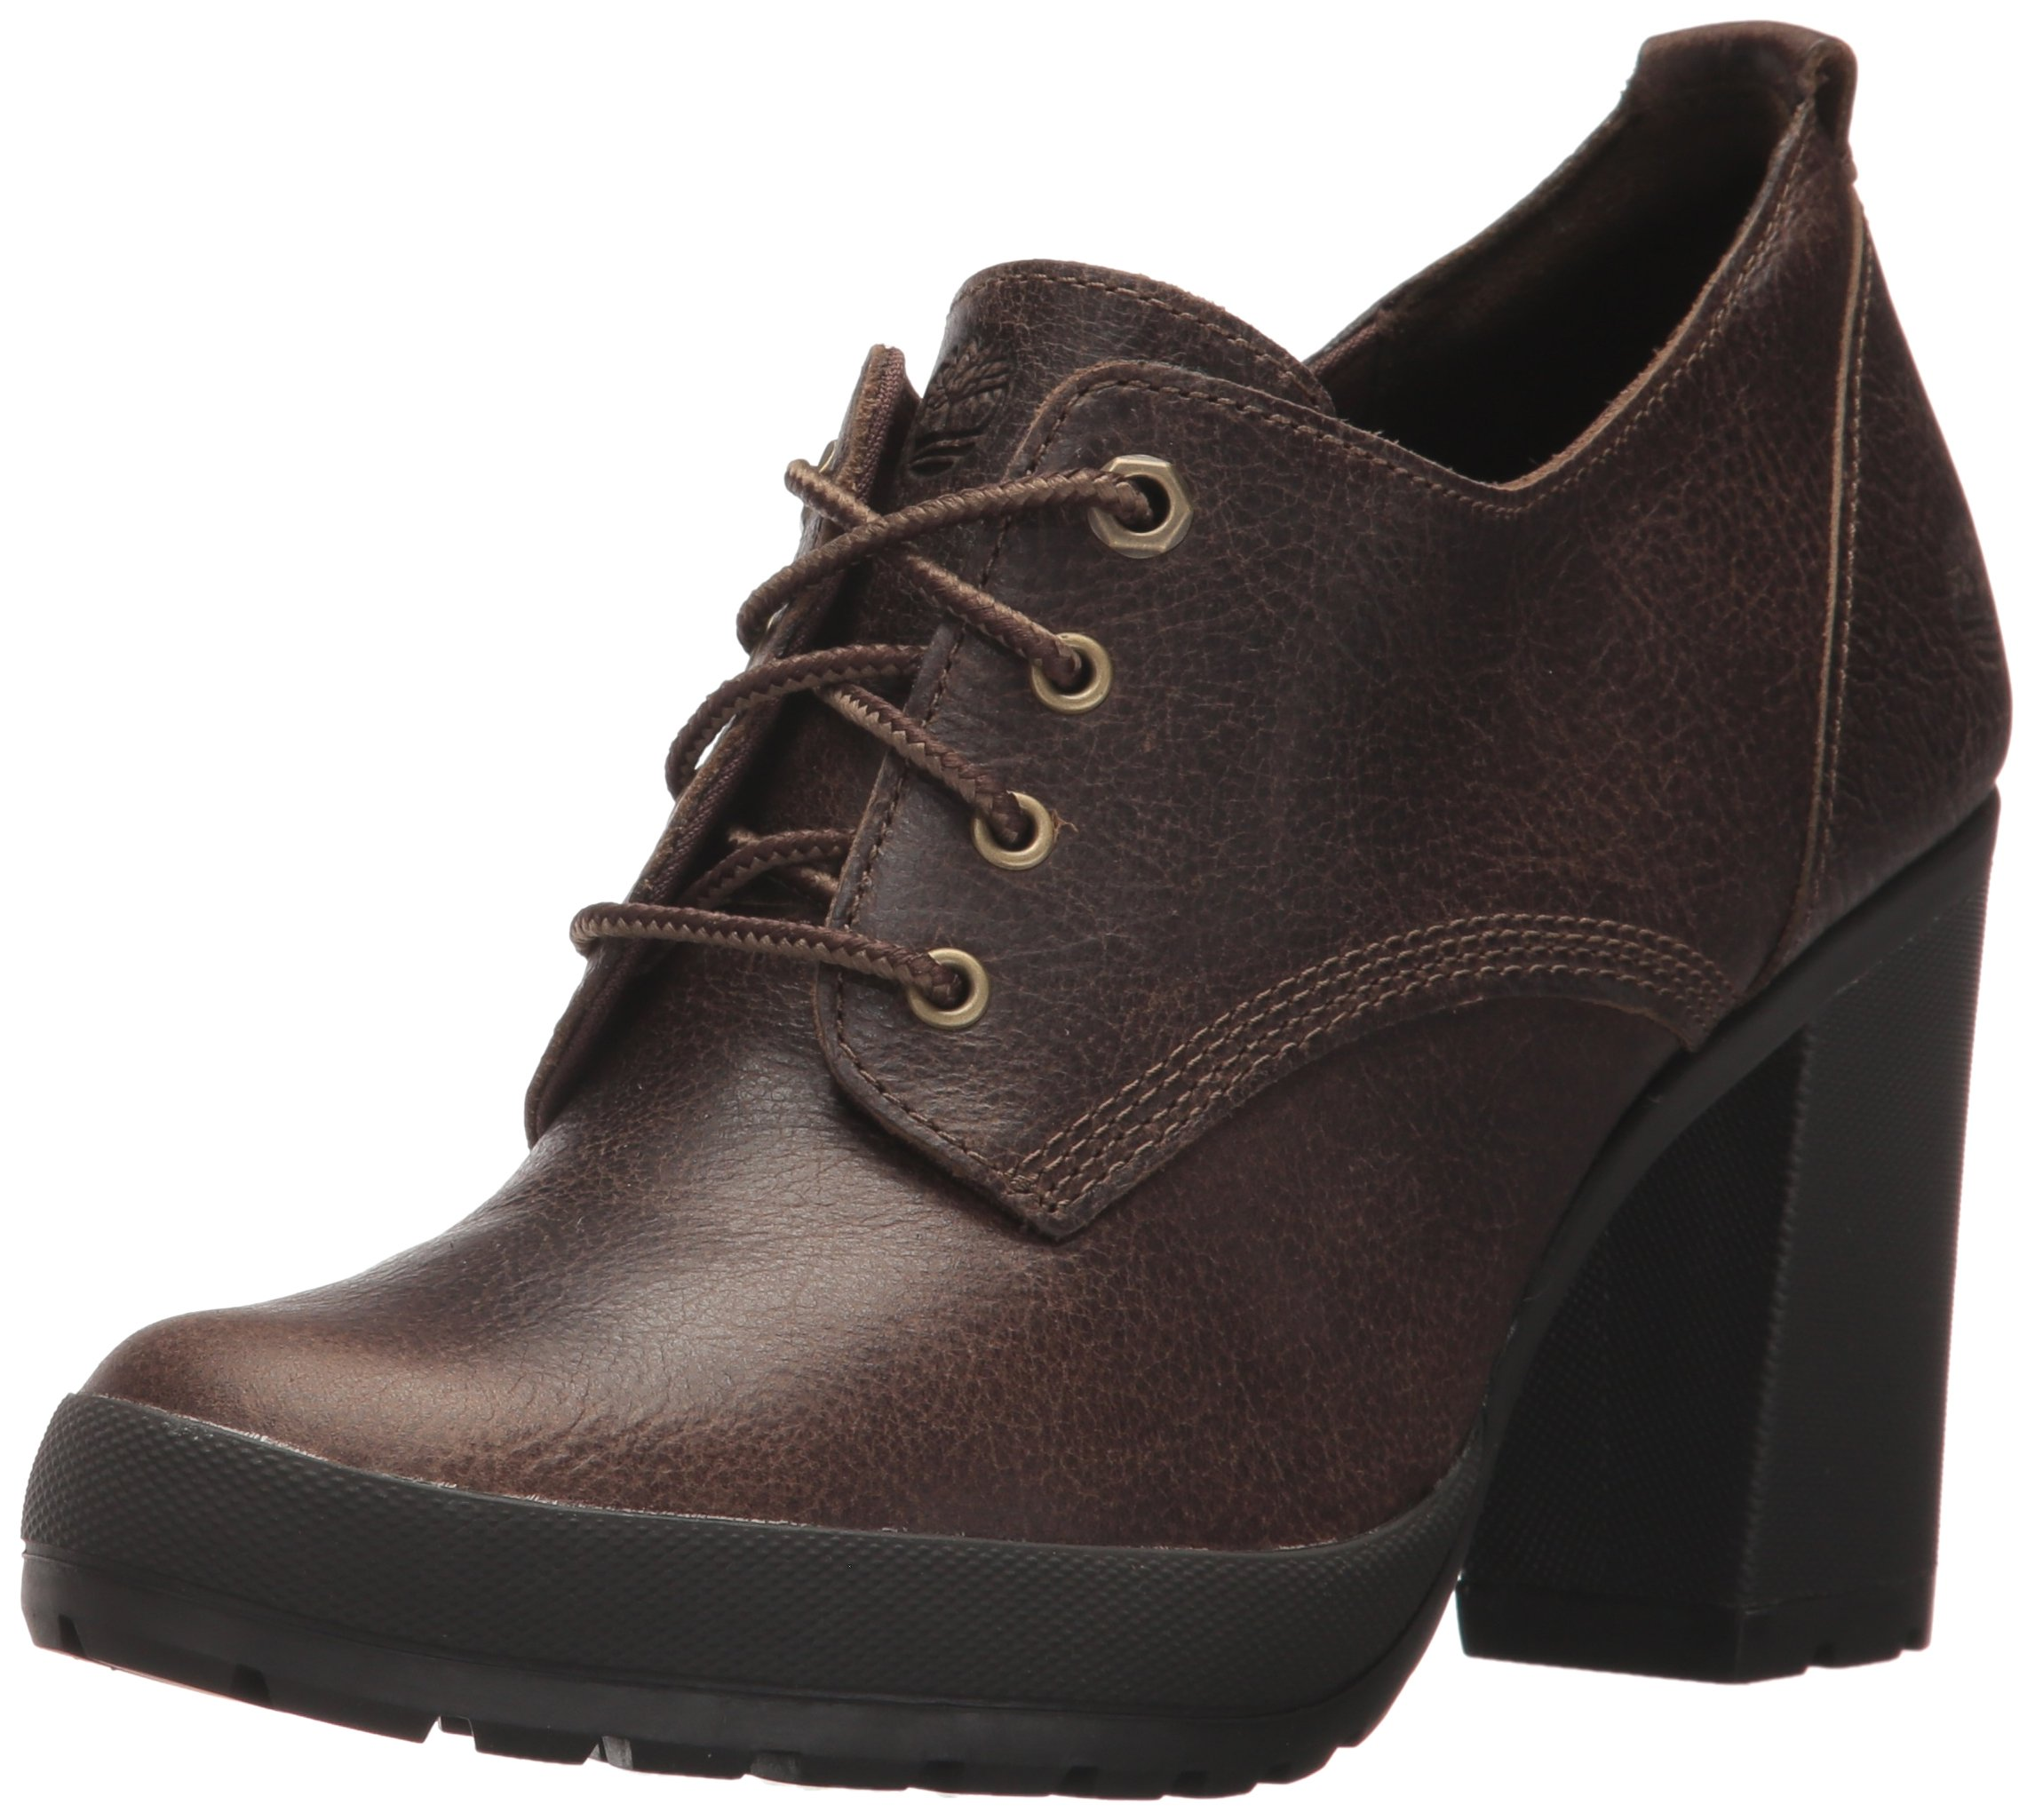 Timberland Women's Camdale Oxford,Dark Brown,10 M US